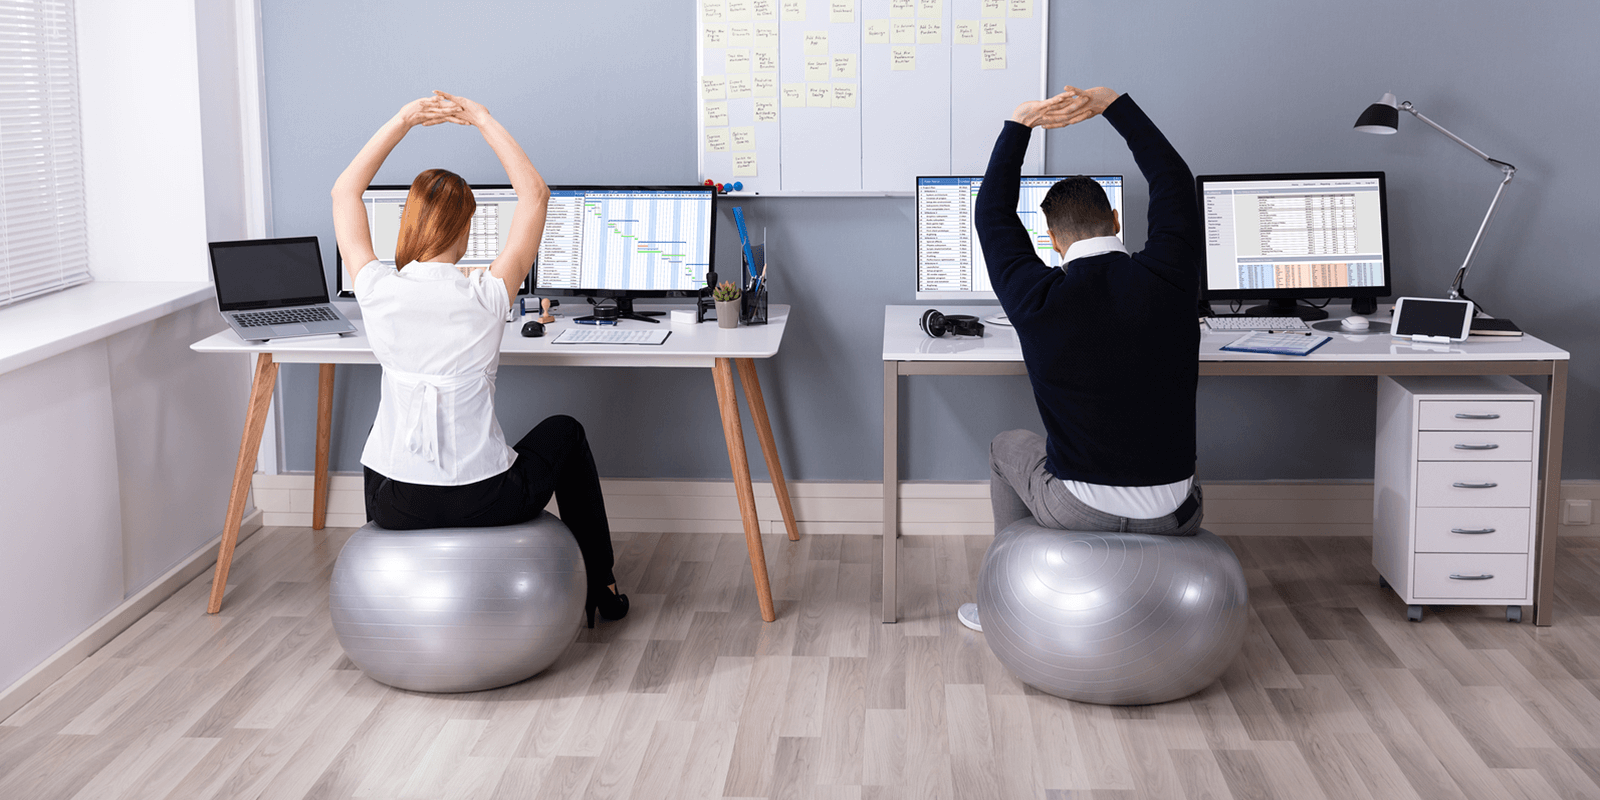 The Essential Guide to Ergonomics in the Workplace | FlexJobs